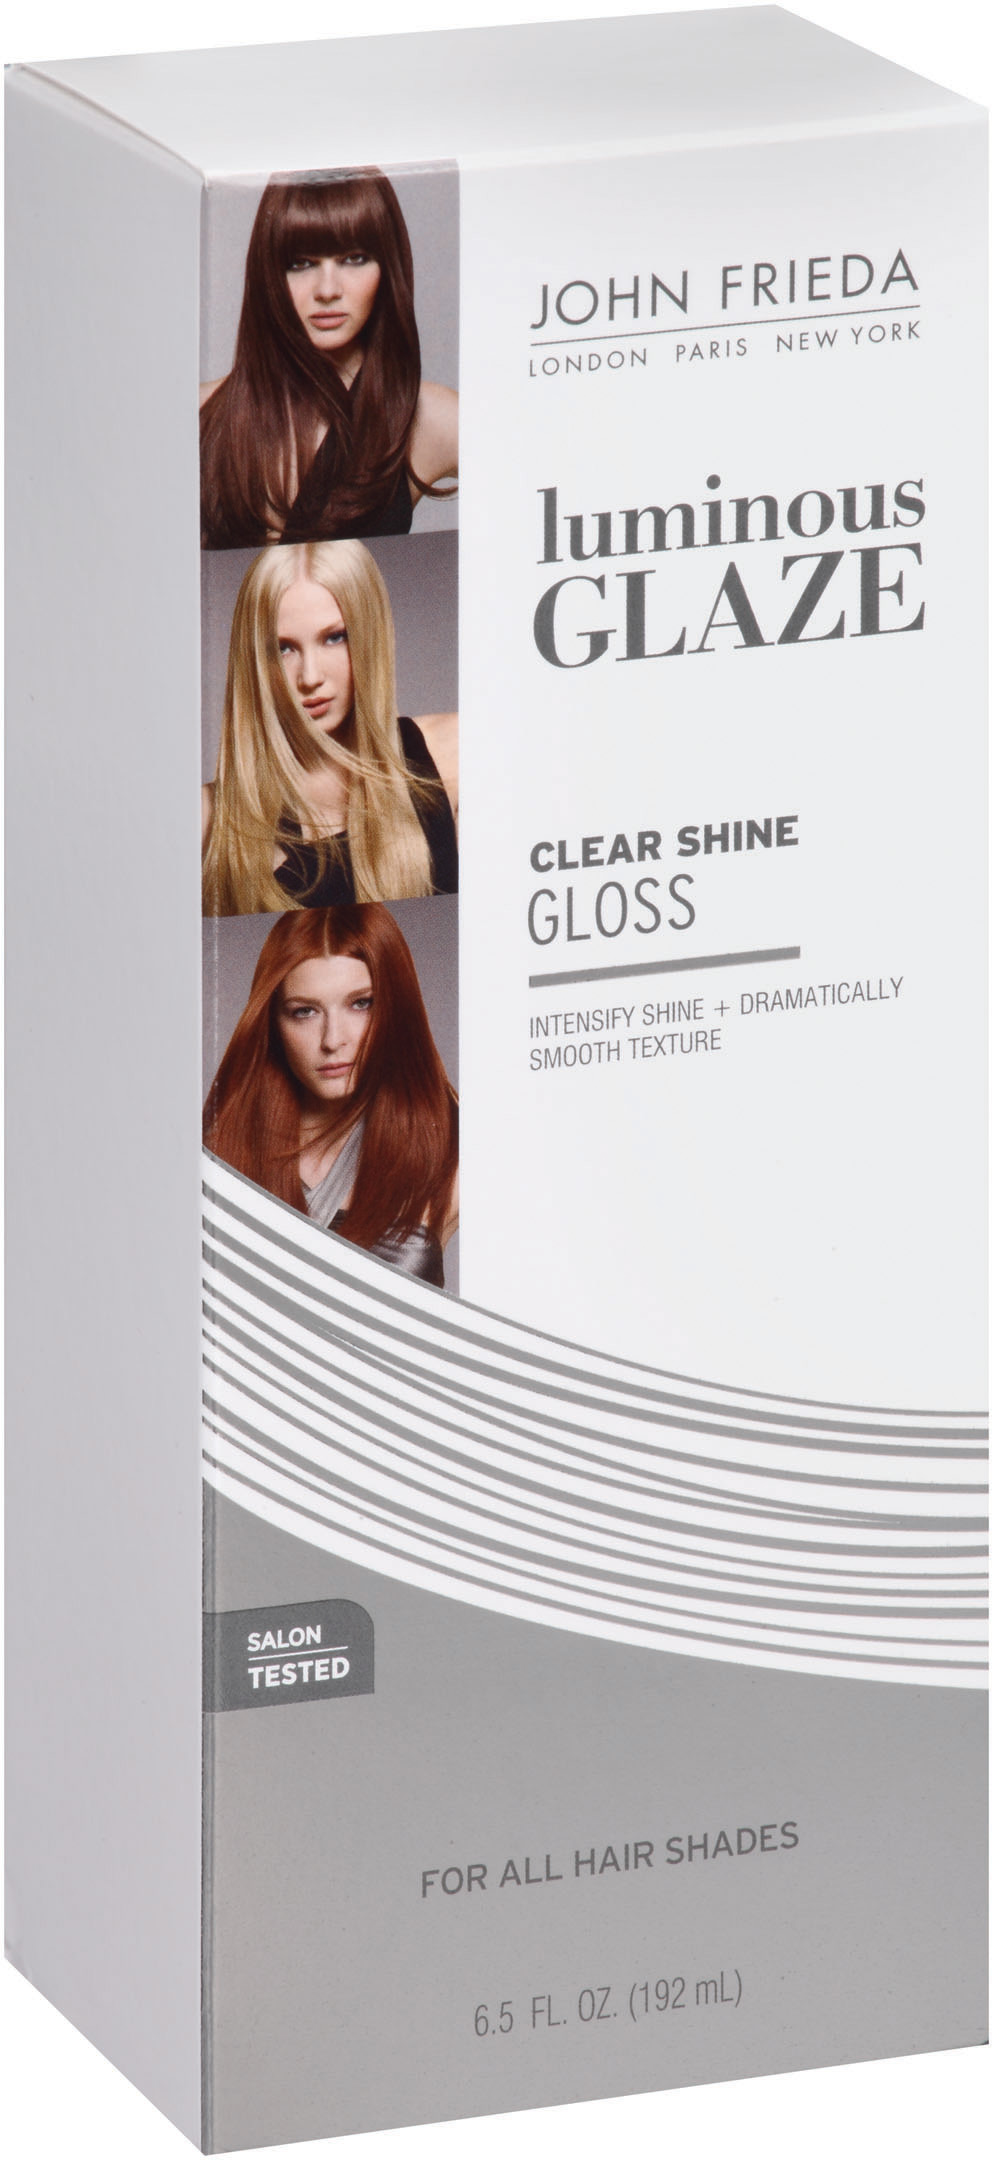 John Frieda Luminous Glaze® Clear Shine Gloss 6.5 fl. oz. Box